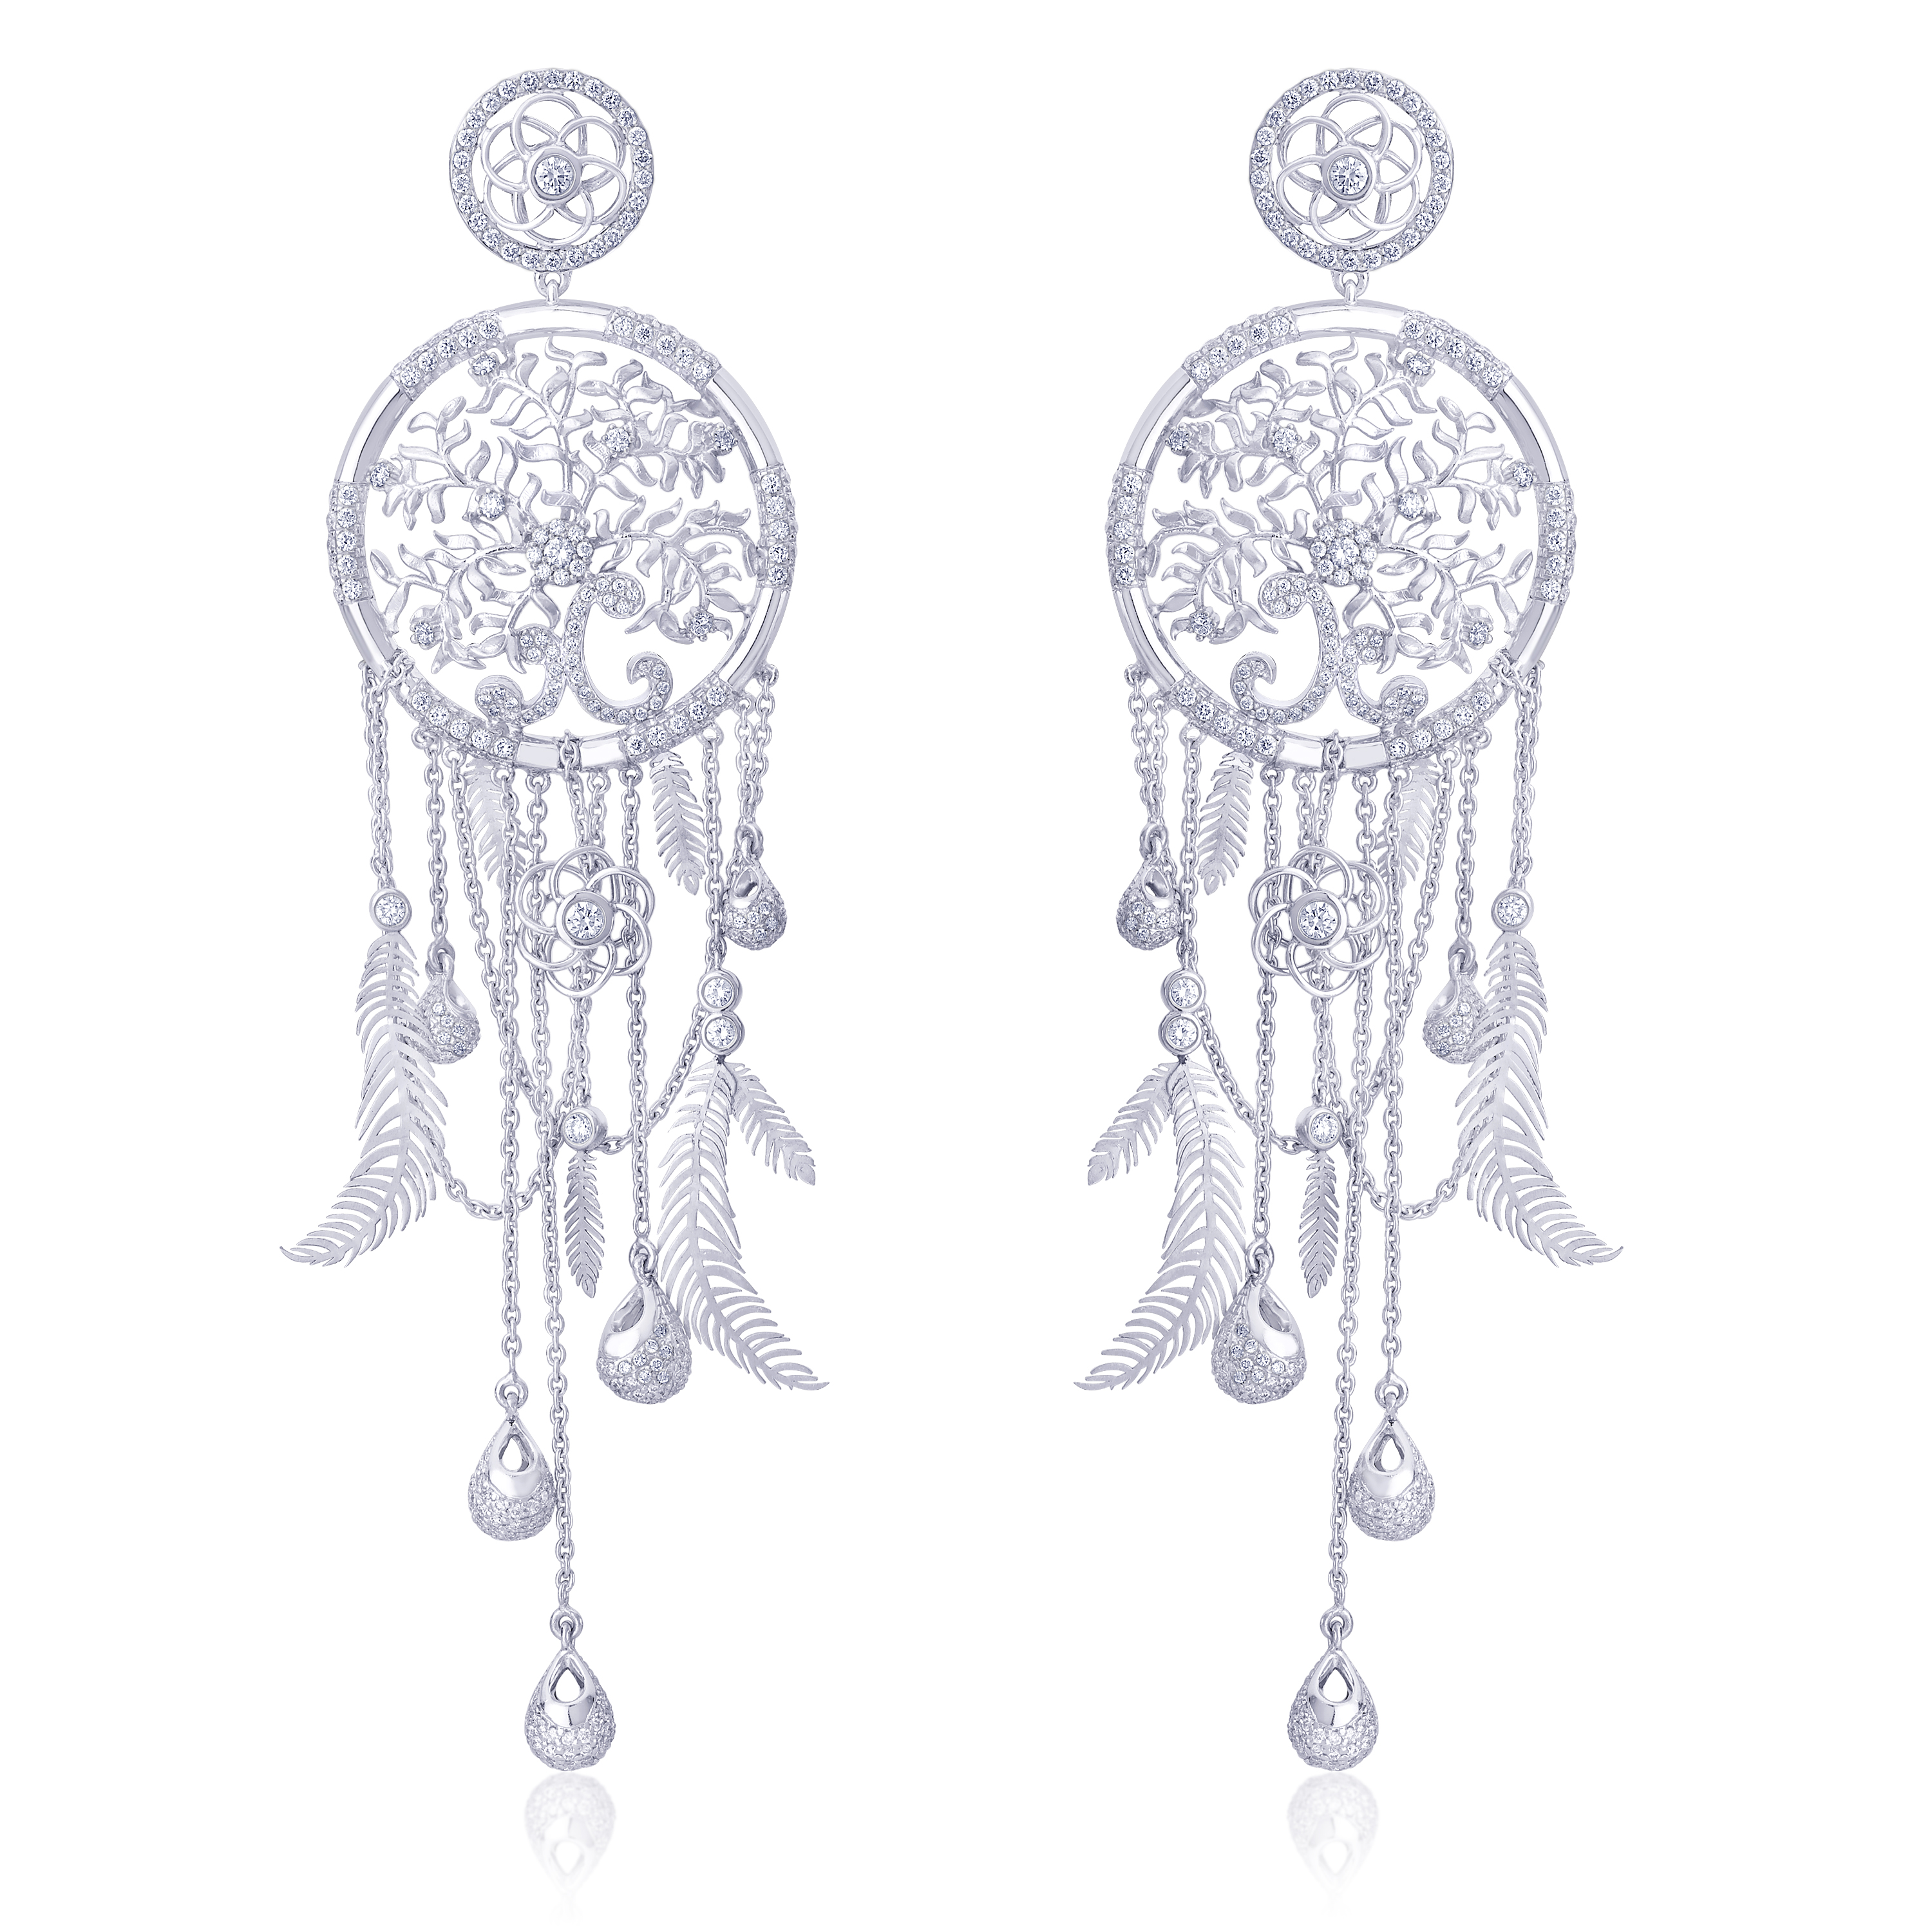 Dream Catcher Earrings Crafted In Eternal Platinum By Orra (2)